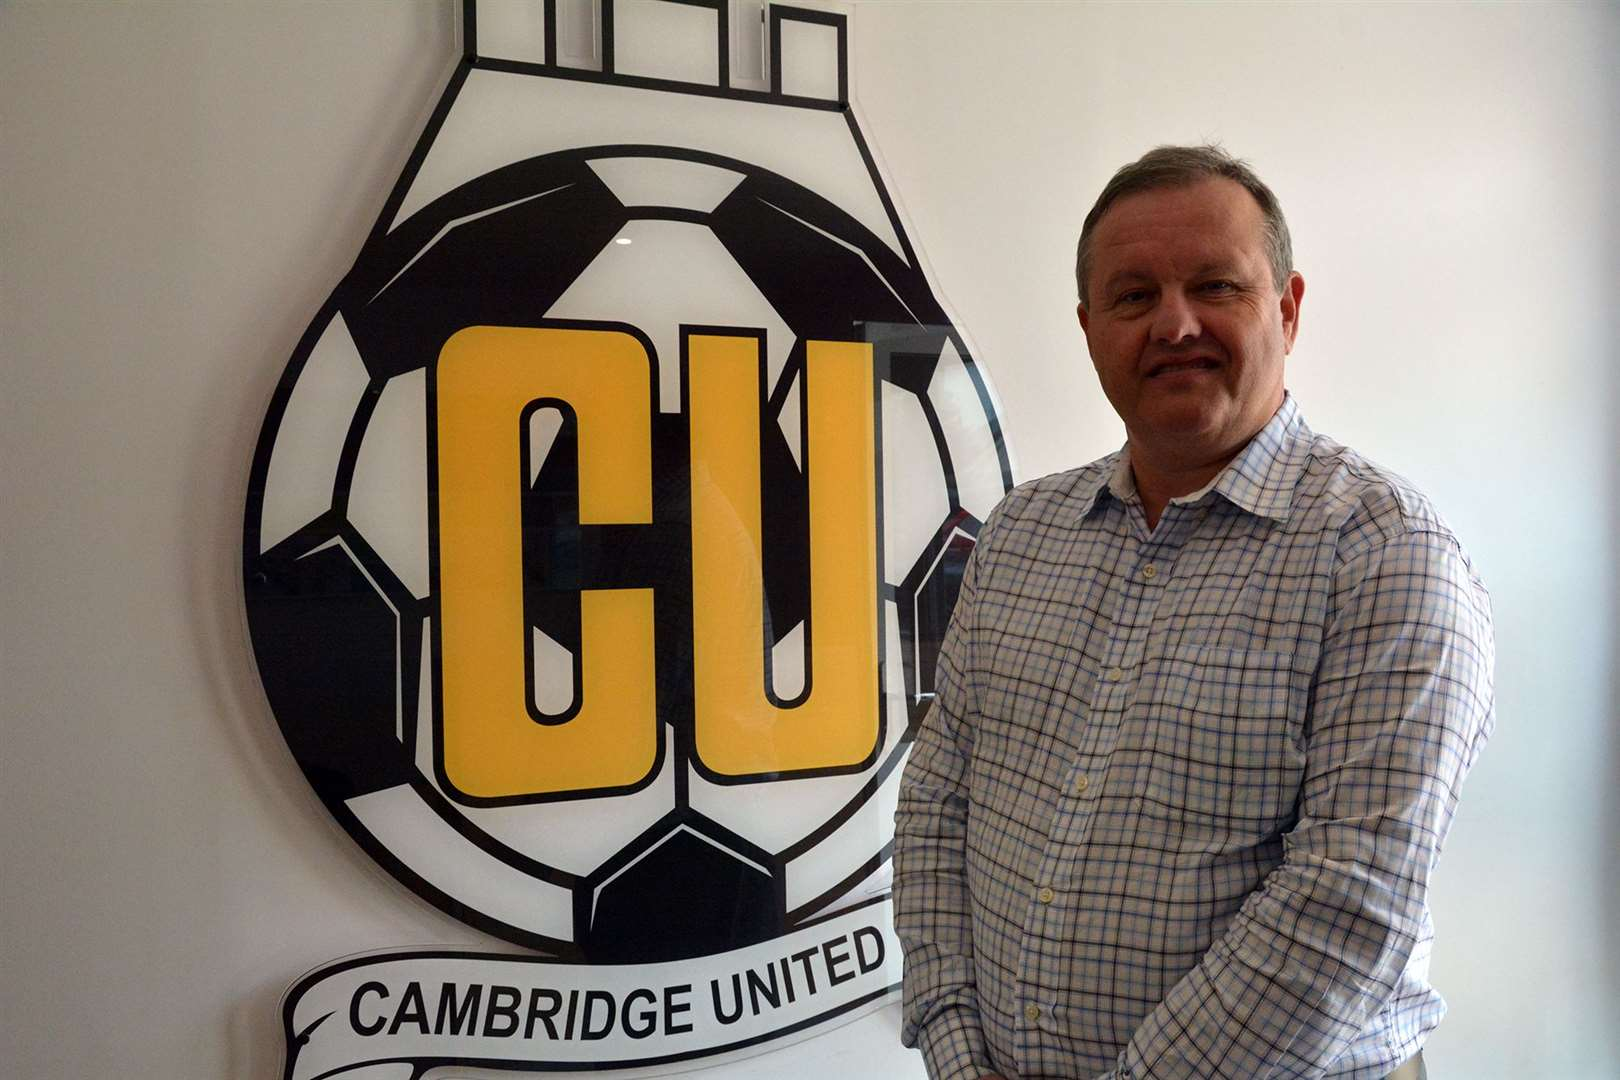 Cambridge United majority shareholder Paul Barry. Picture: Cambridge United